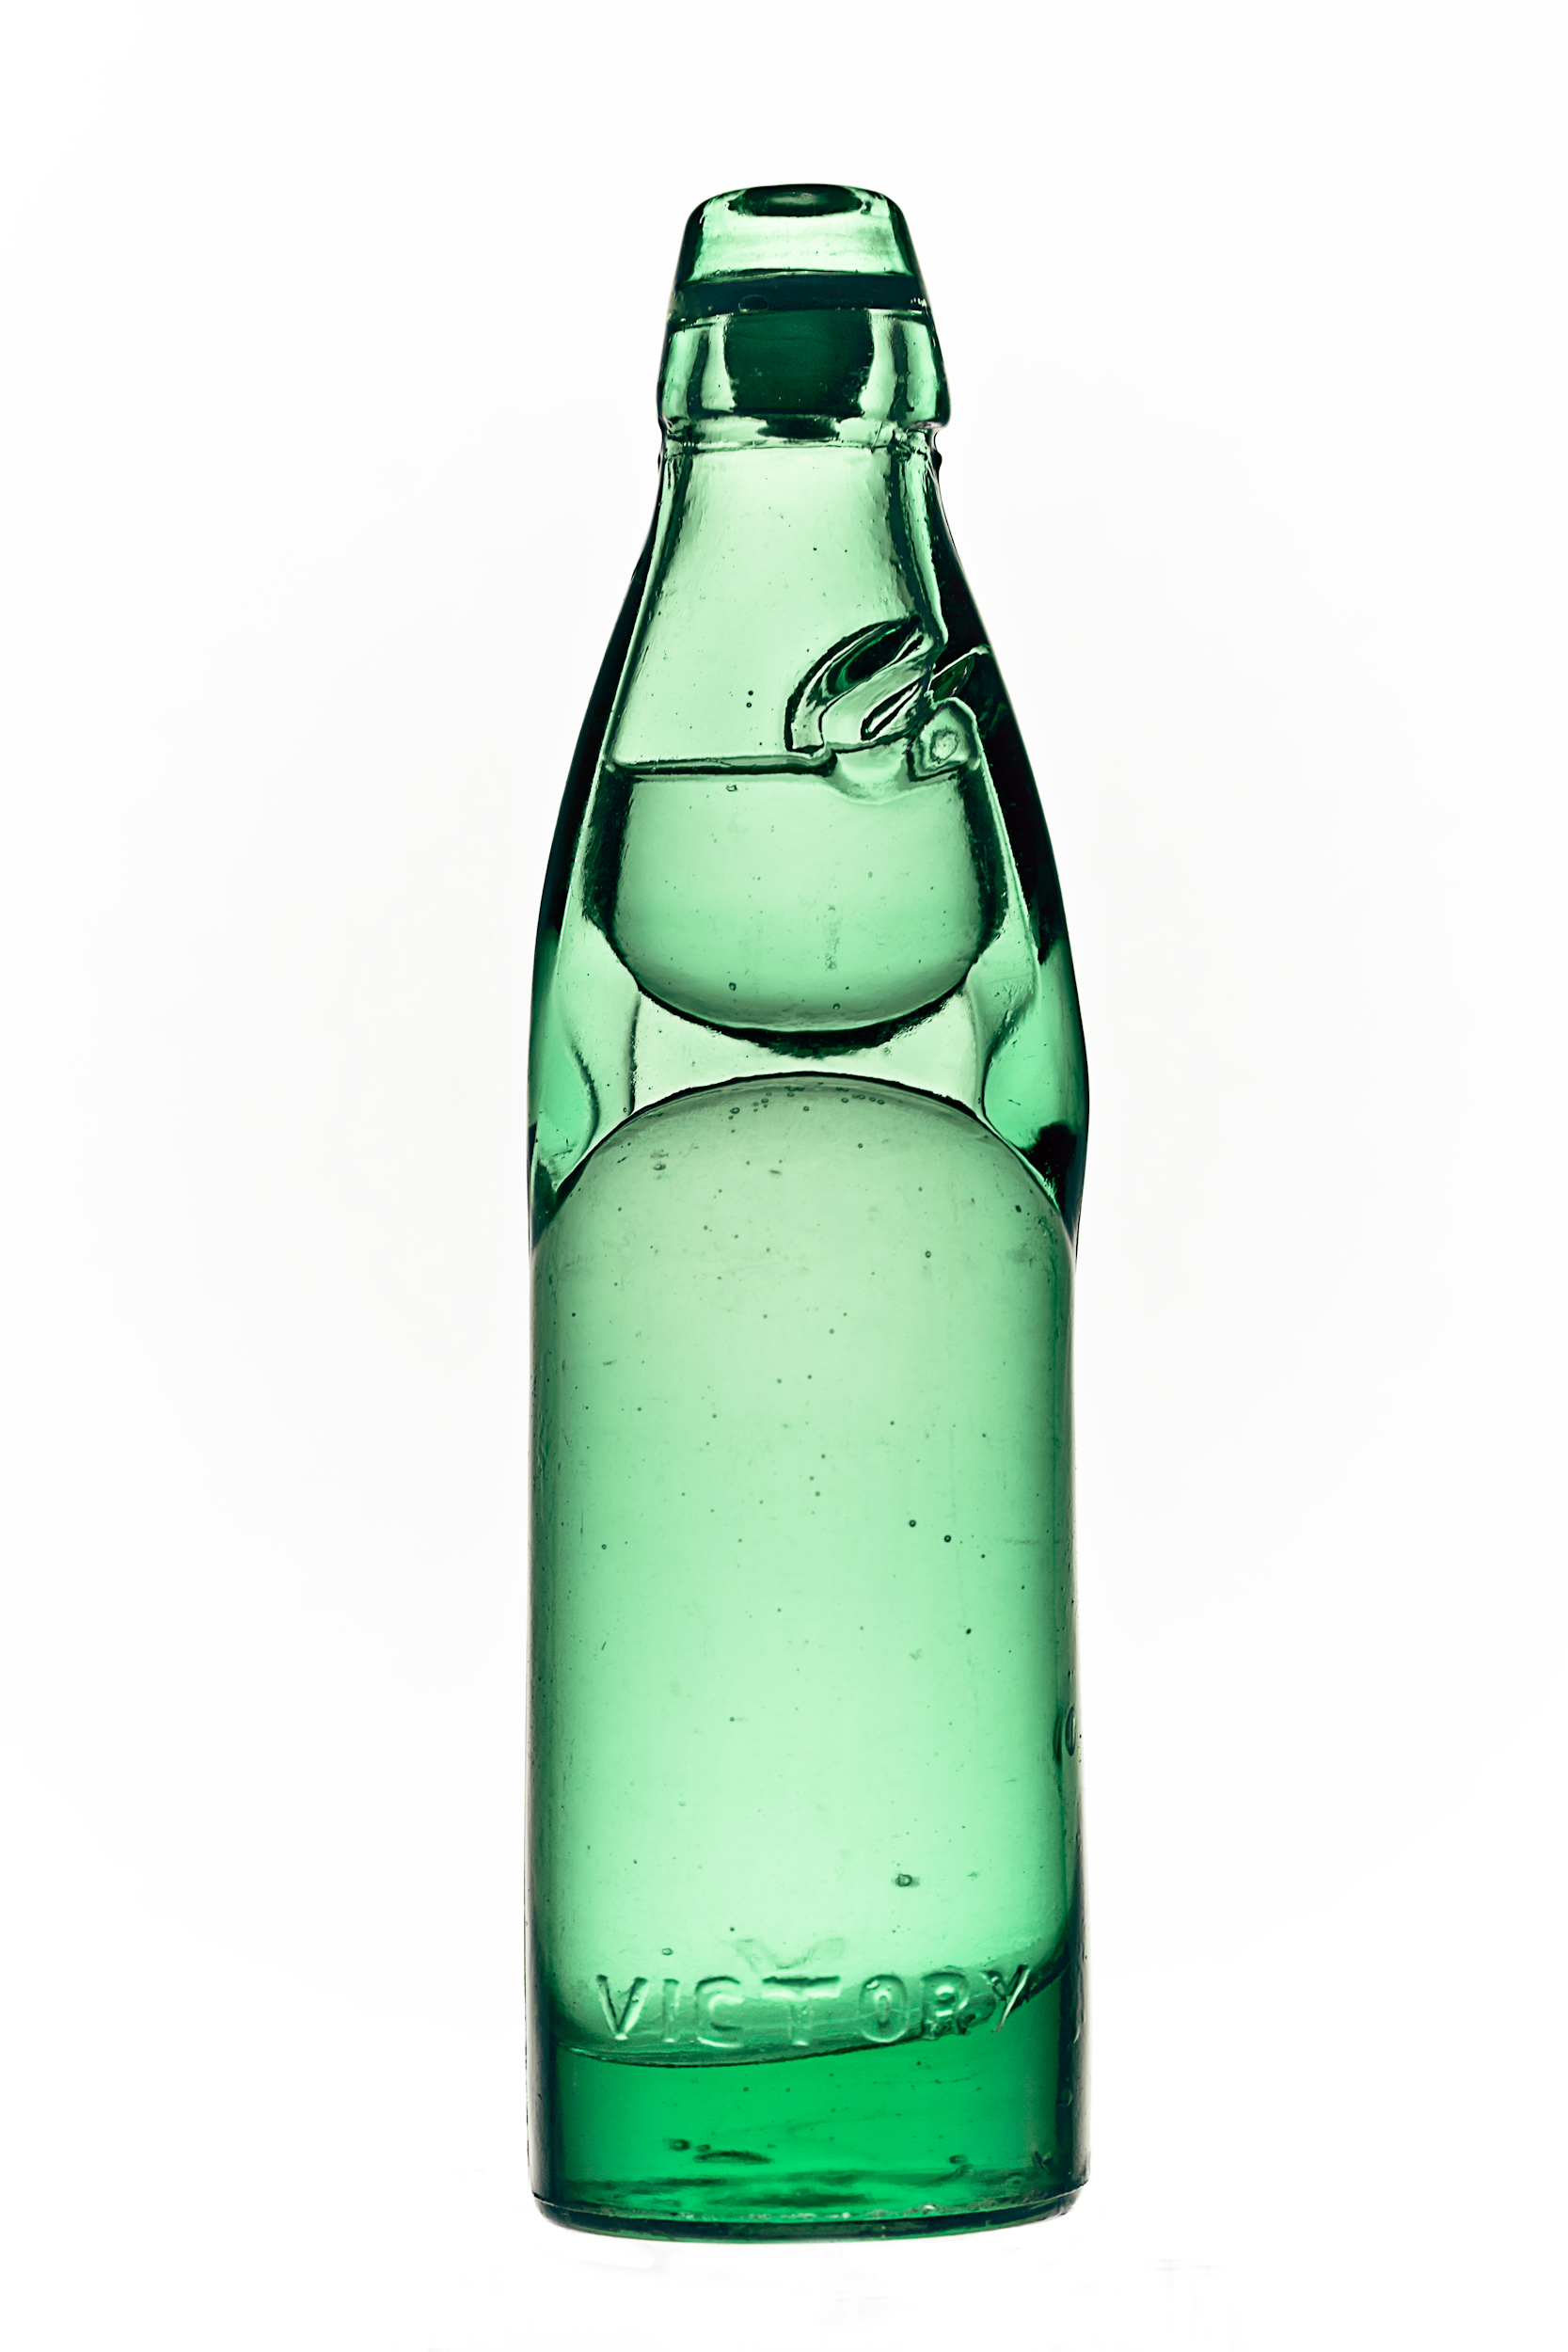 Sindhur_Photography_Perspectives_Product_Golisoda_Soda_36.JPG